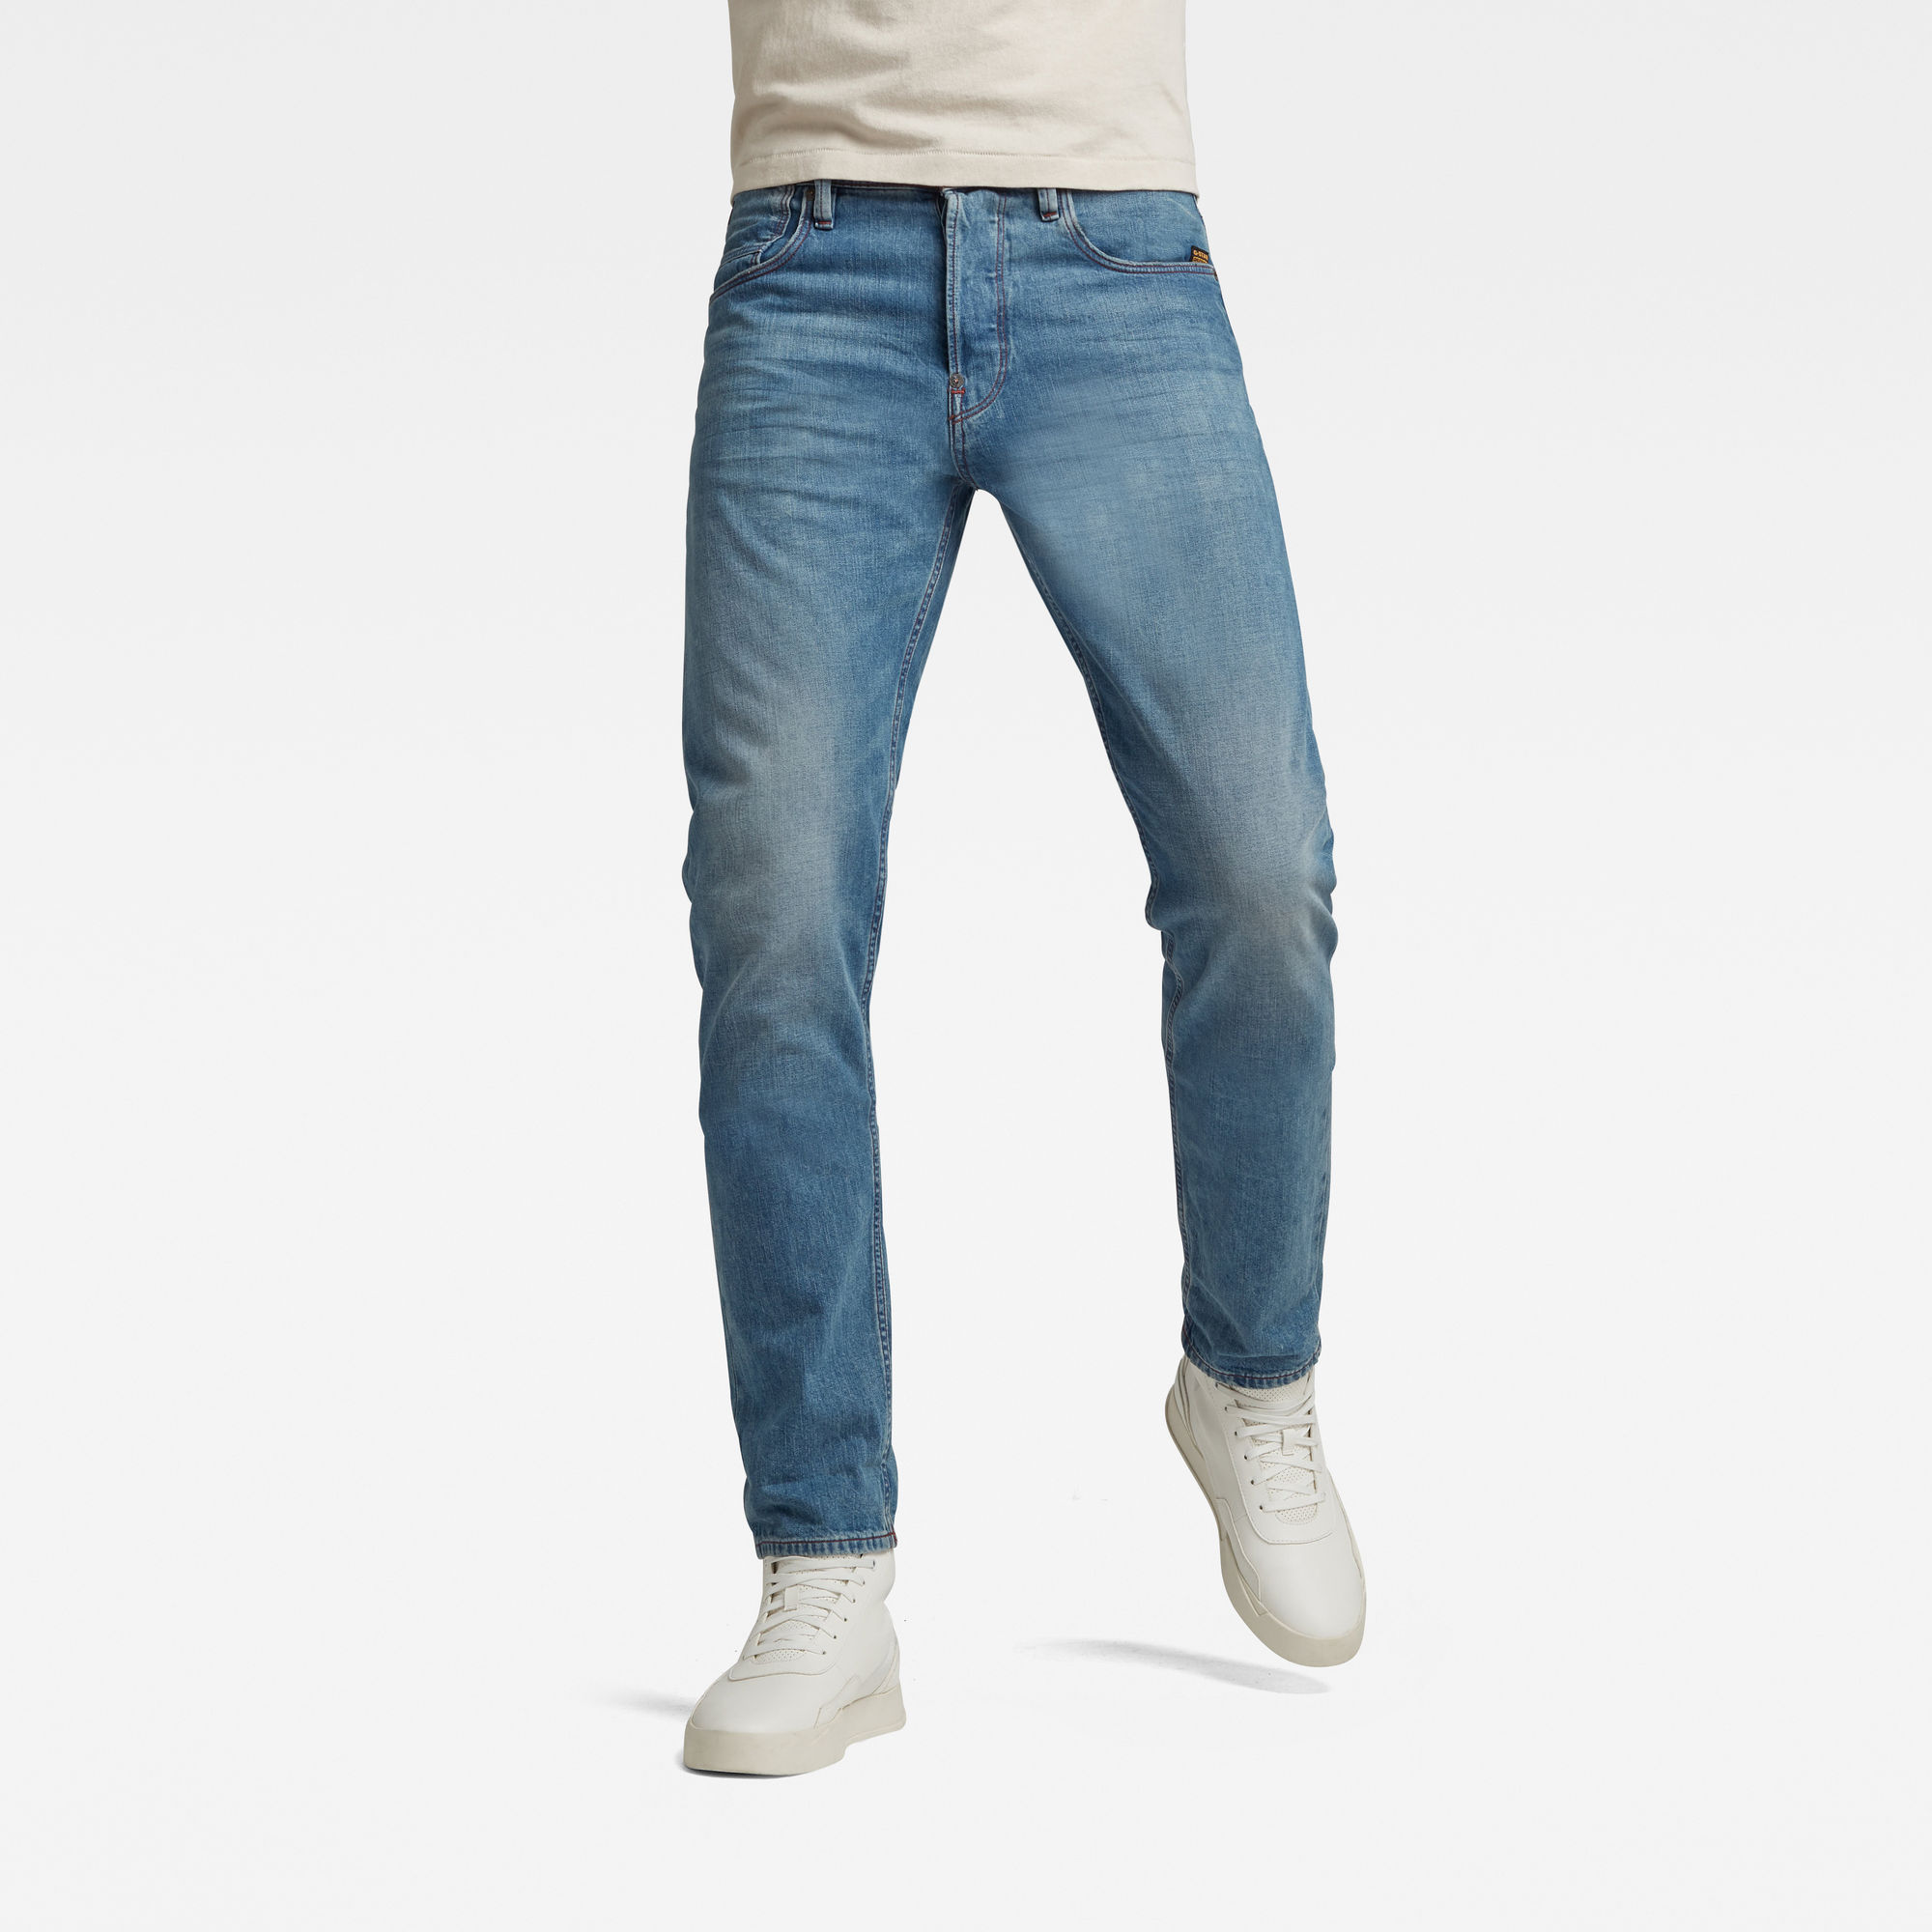 G-Star RAW Heren Alum Relaxed Tapered Jeans Blauw